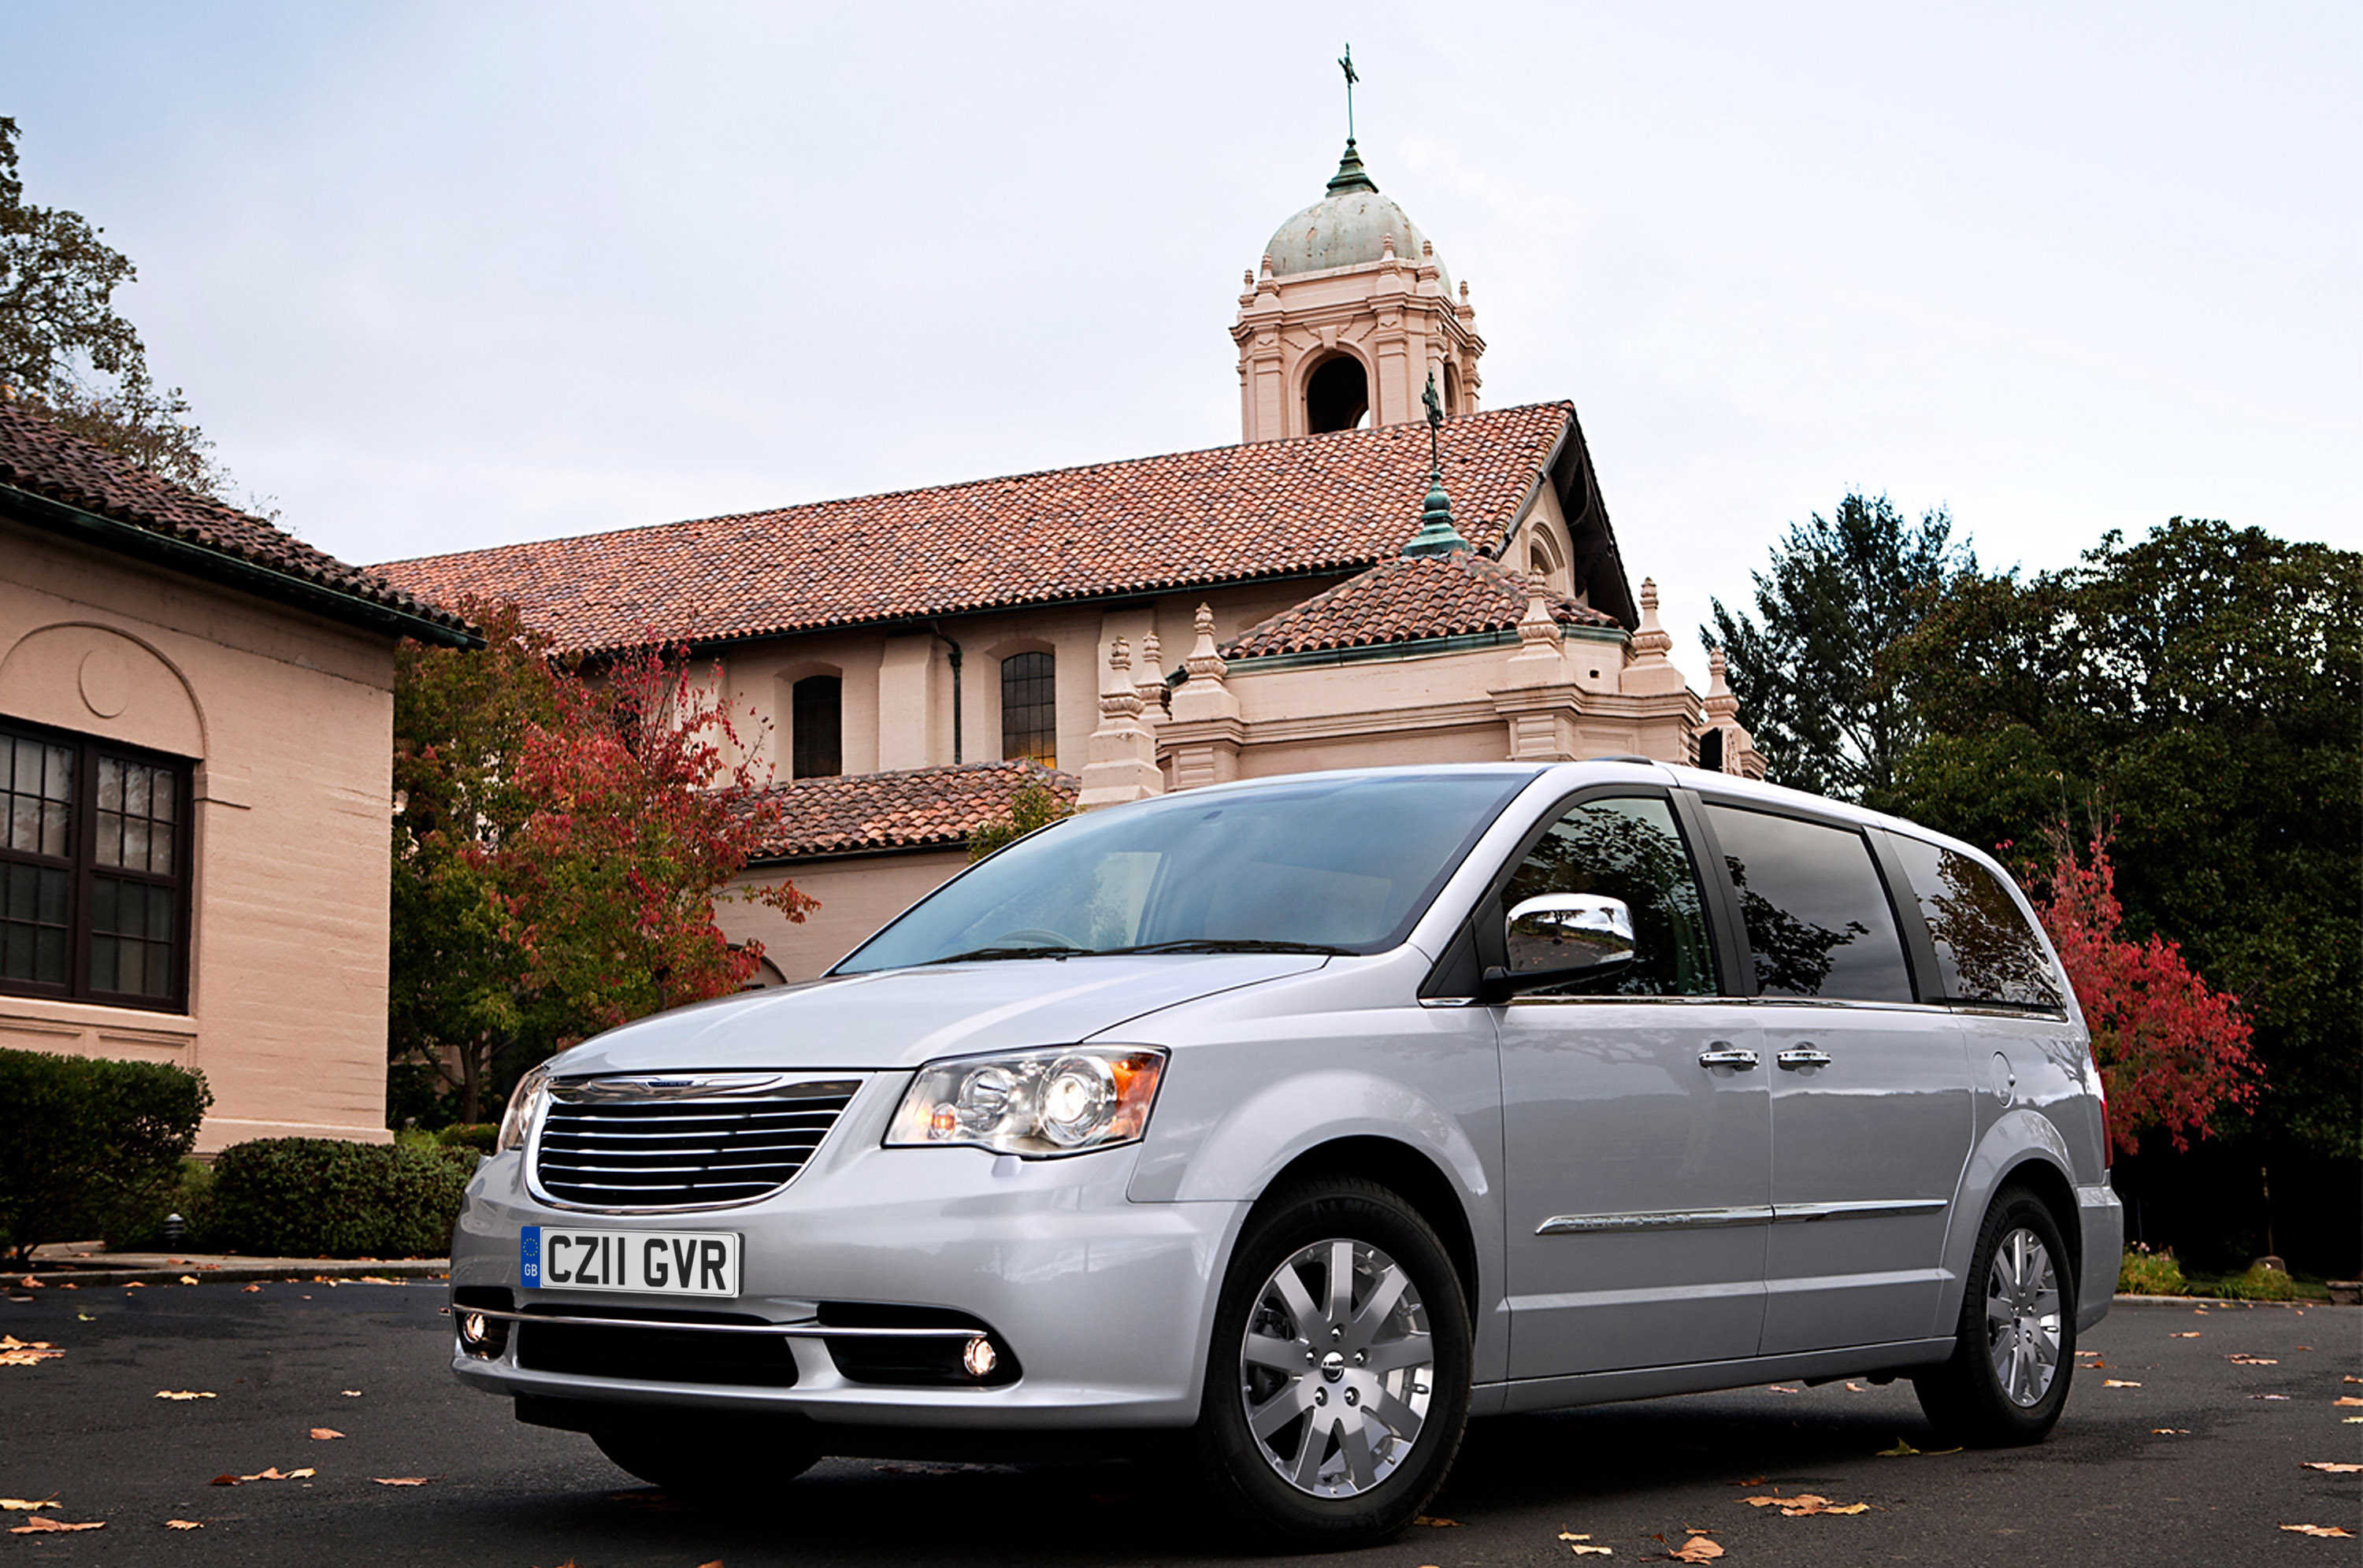 Chrysler grand voyager limited edition #5